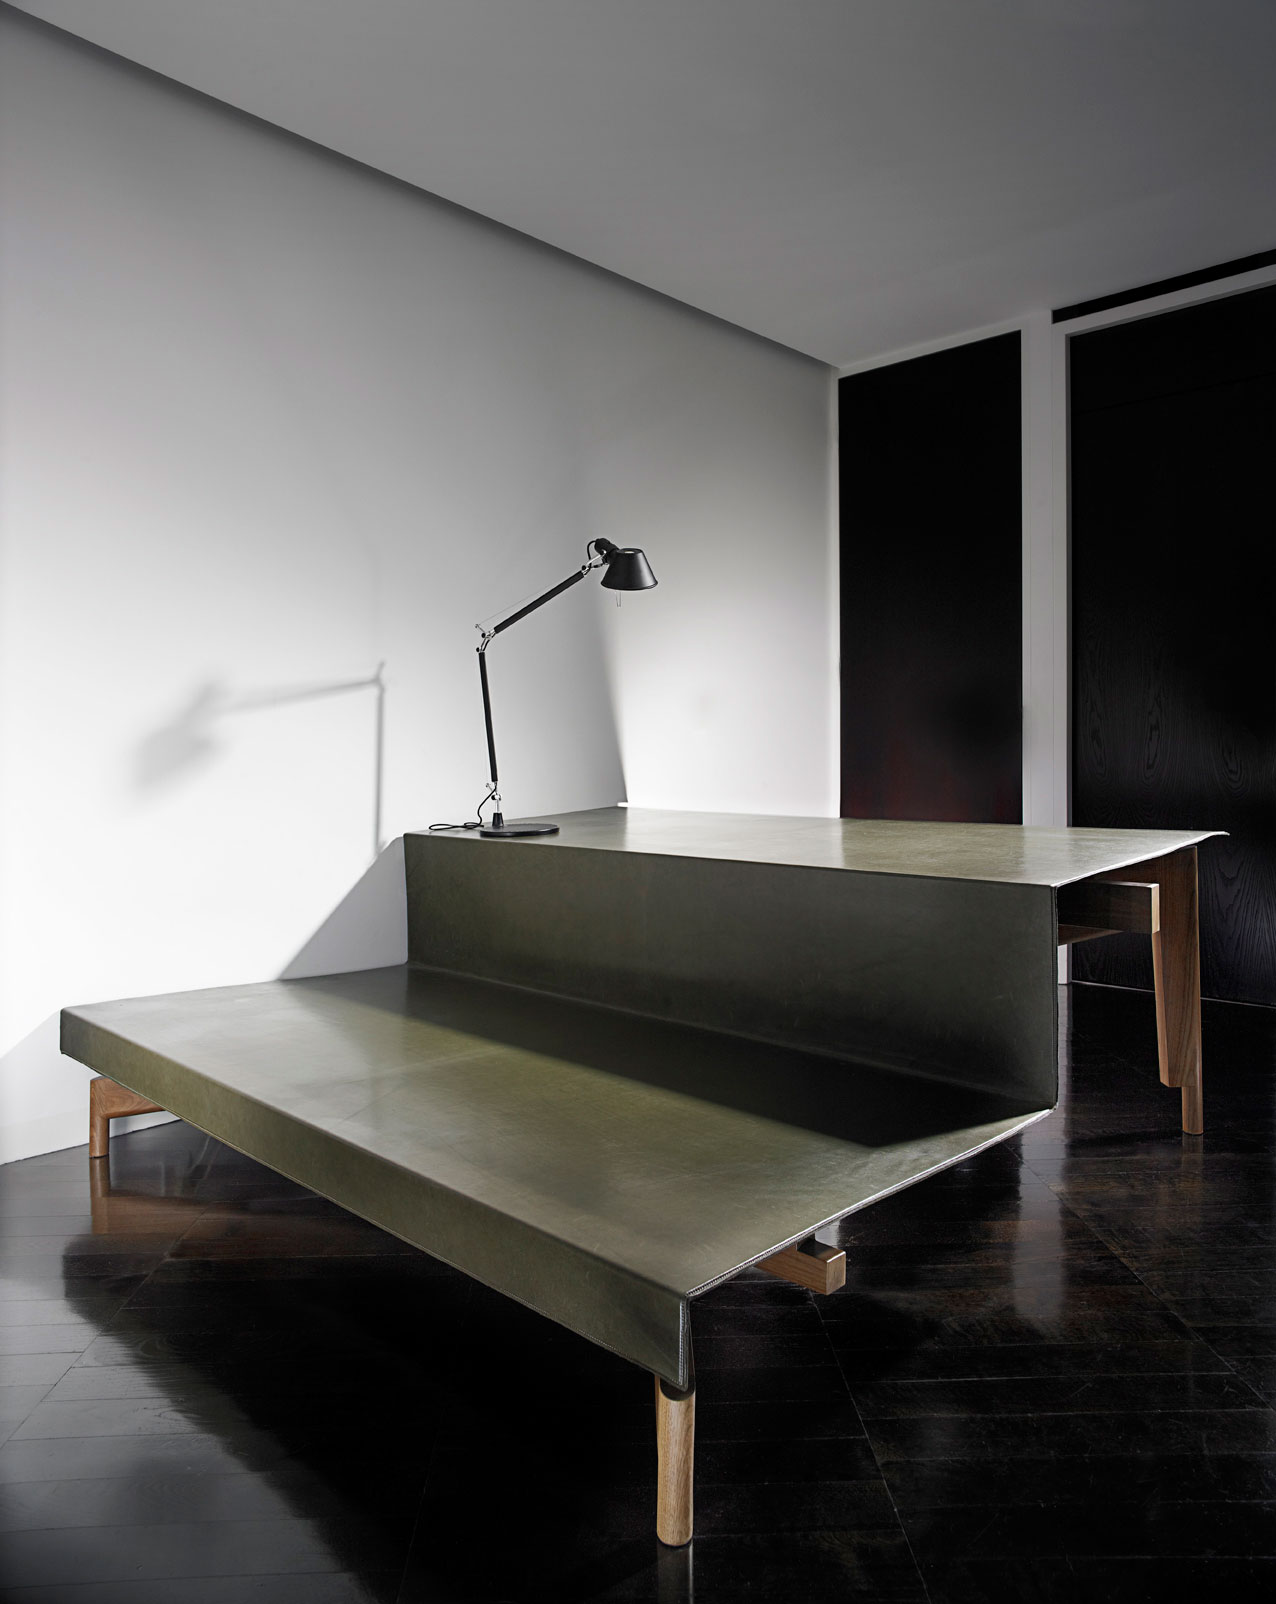 Riparian Daybed Desk by Richards & Spence | Yellowtrace